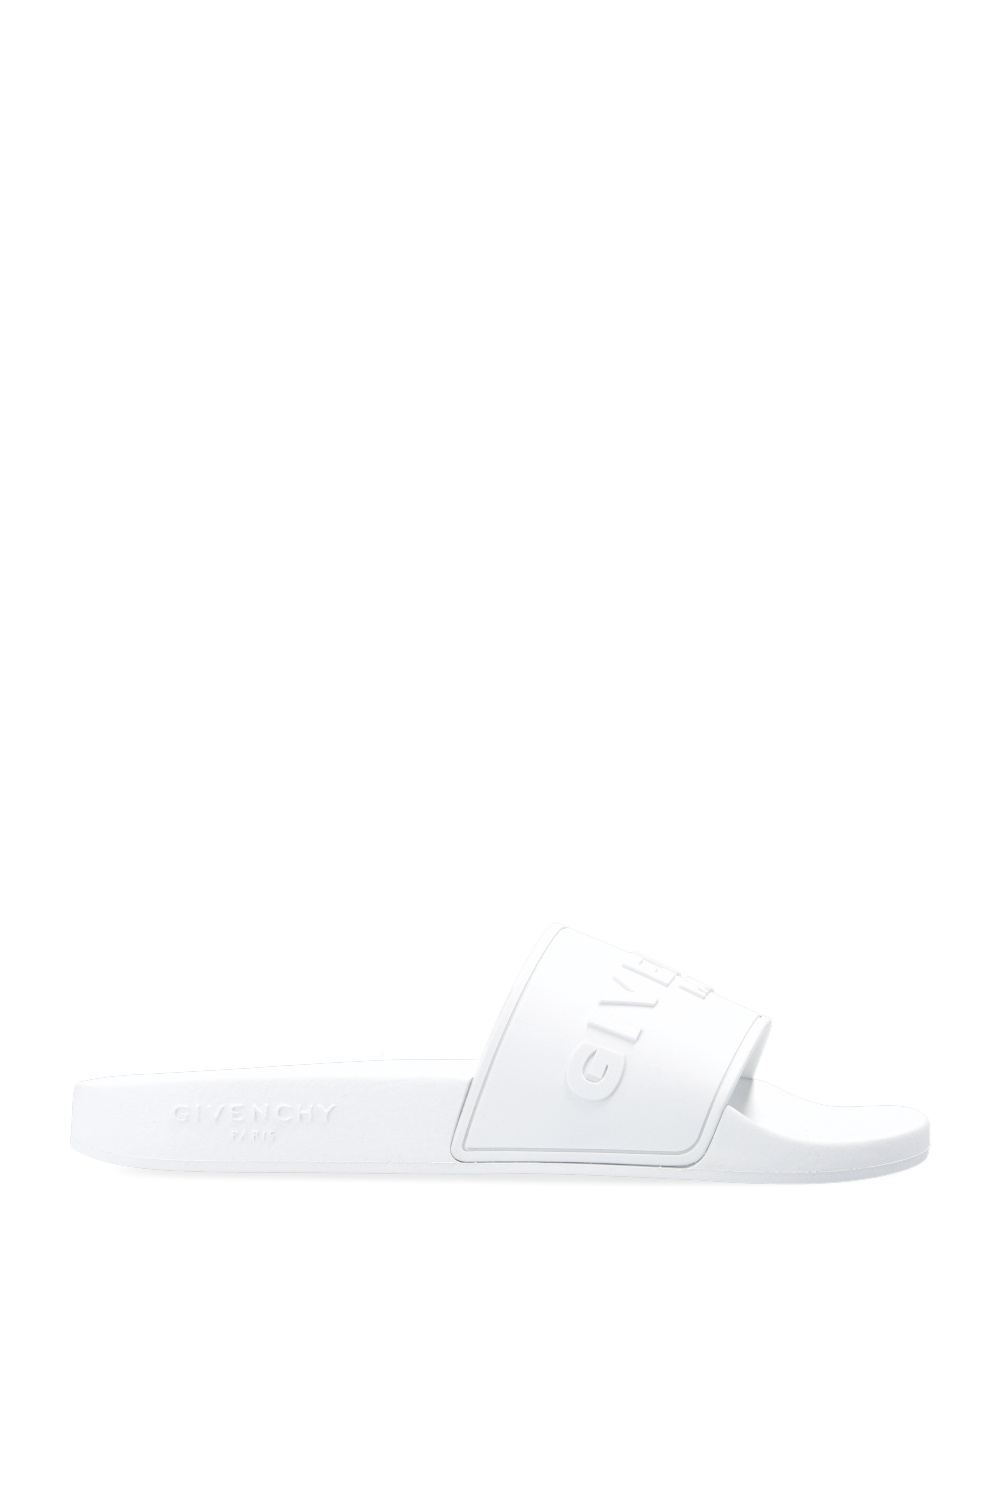 Givenchy Slides with logo